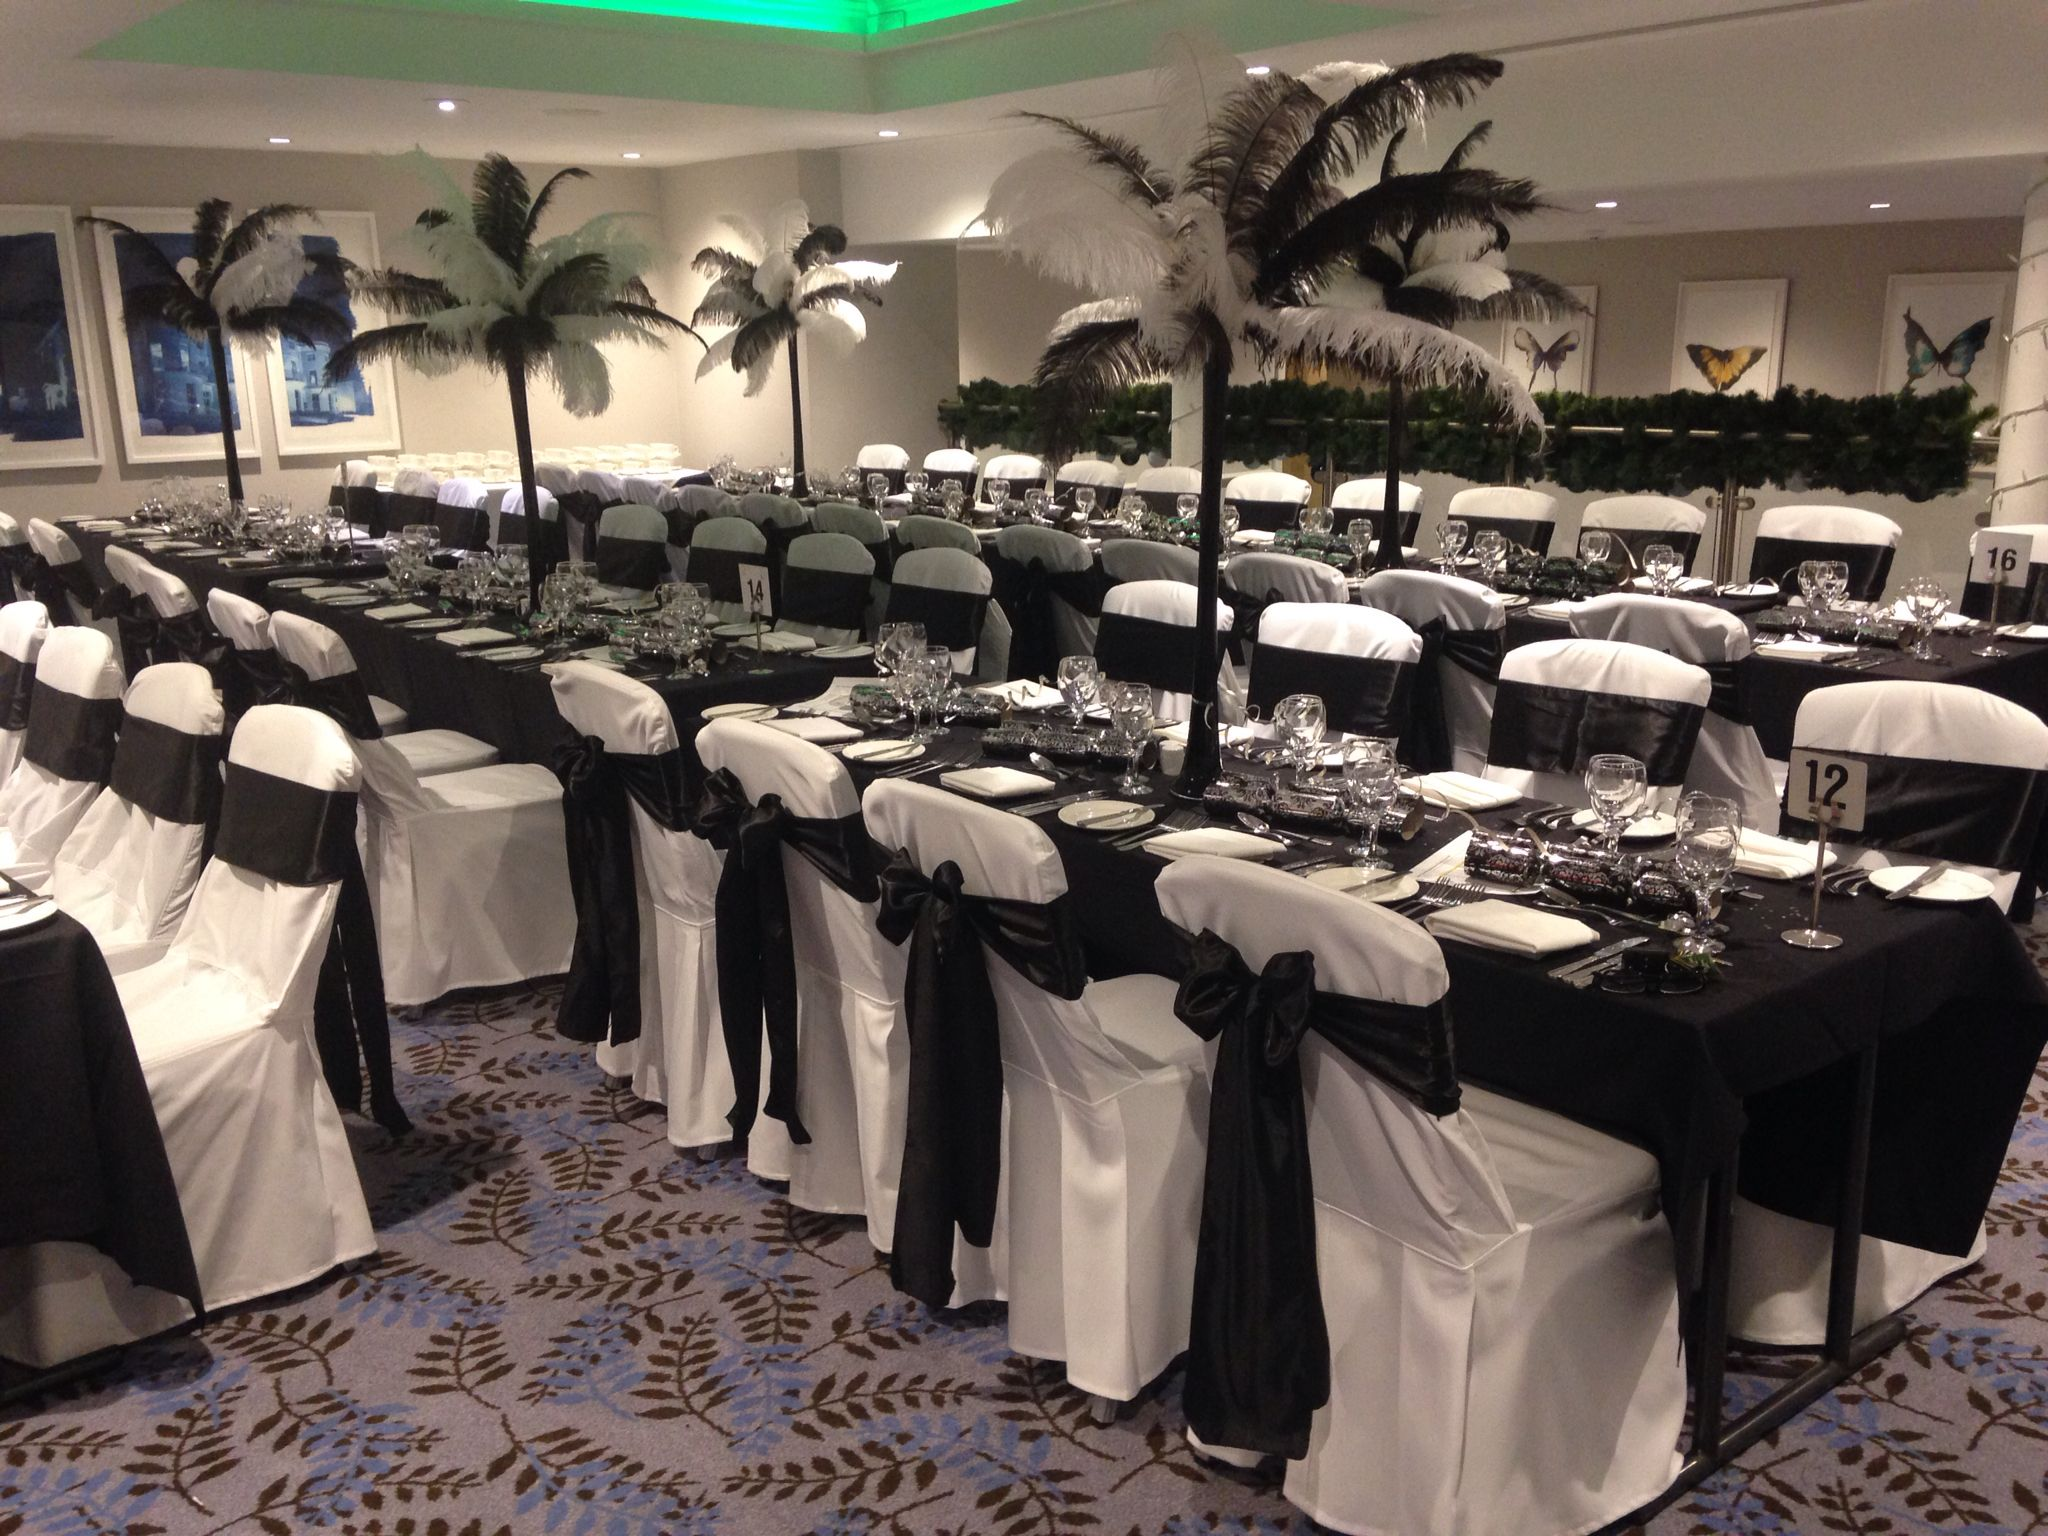 Chair Covers New Year Kettler Garden Years Eve White With Black Satin Sashes Bowden